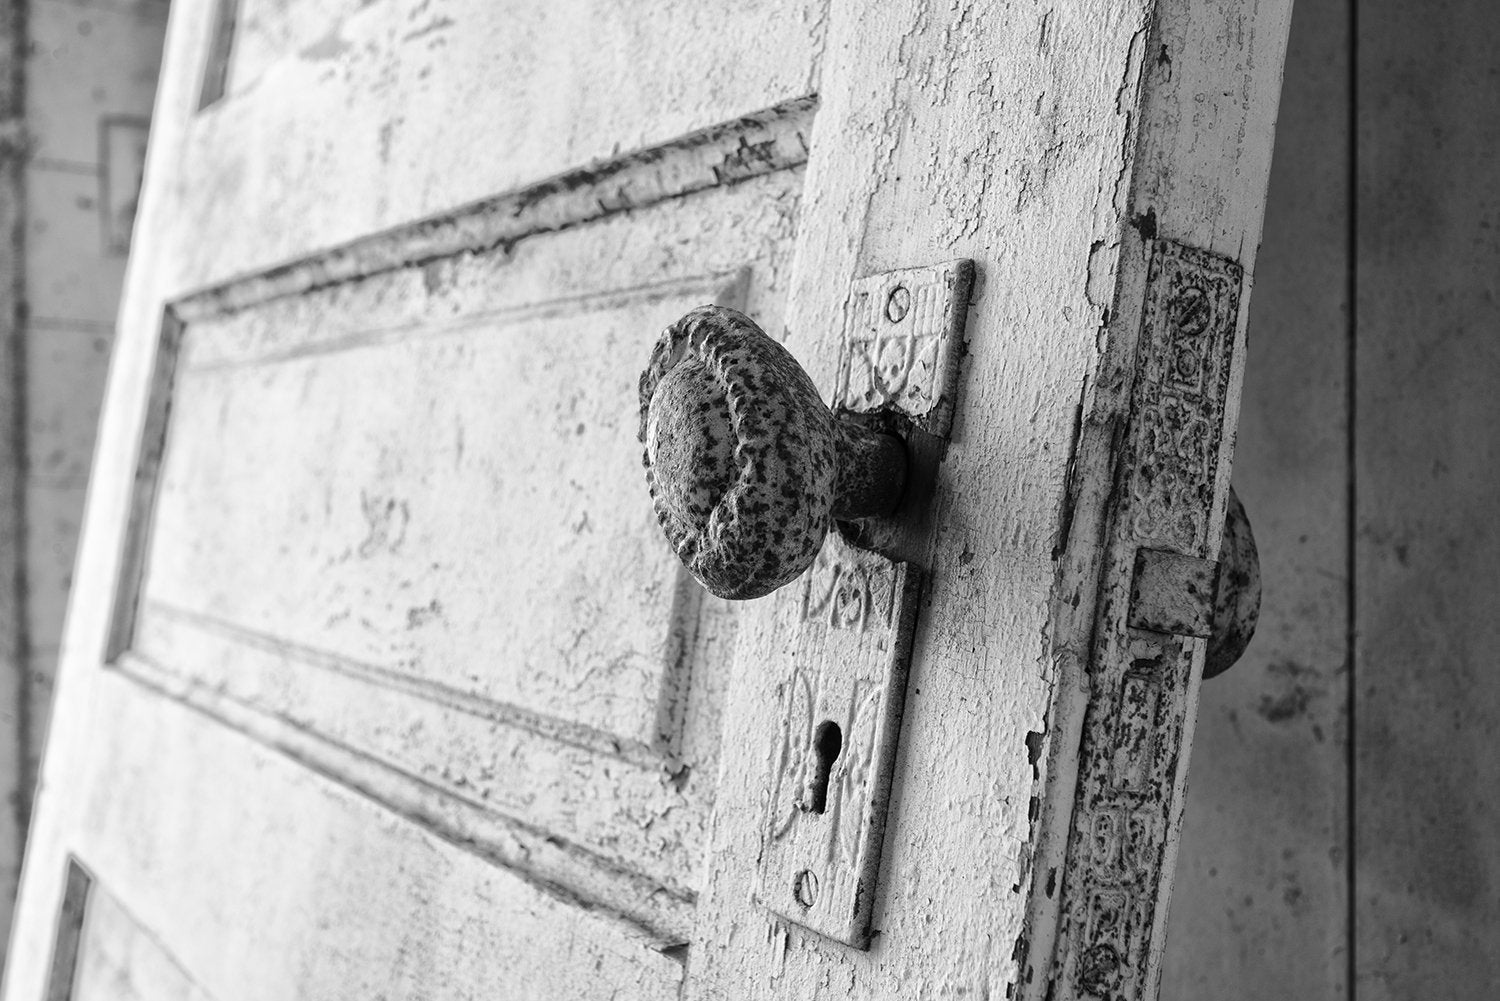 Ornate Old Door Knob in an Abandoned Farm House. Black and white photograph by Keith Dotson. Buy a fine art print.